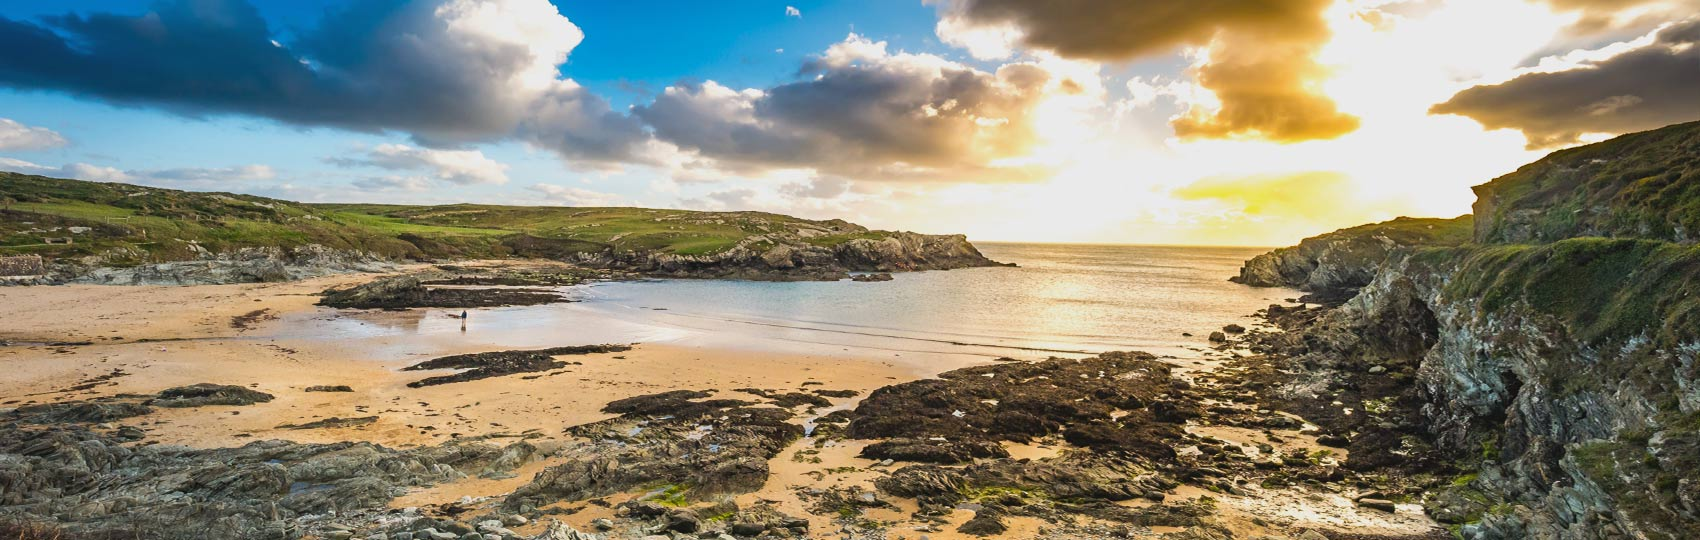 Porth Dafarch Beach at sun down